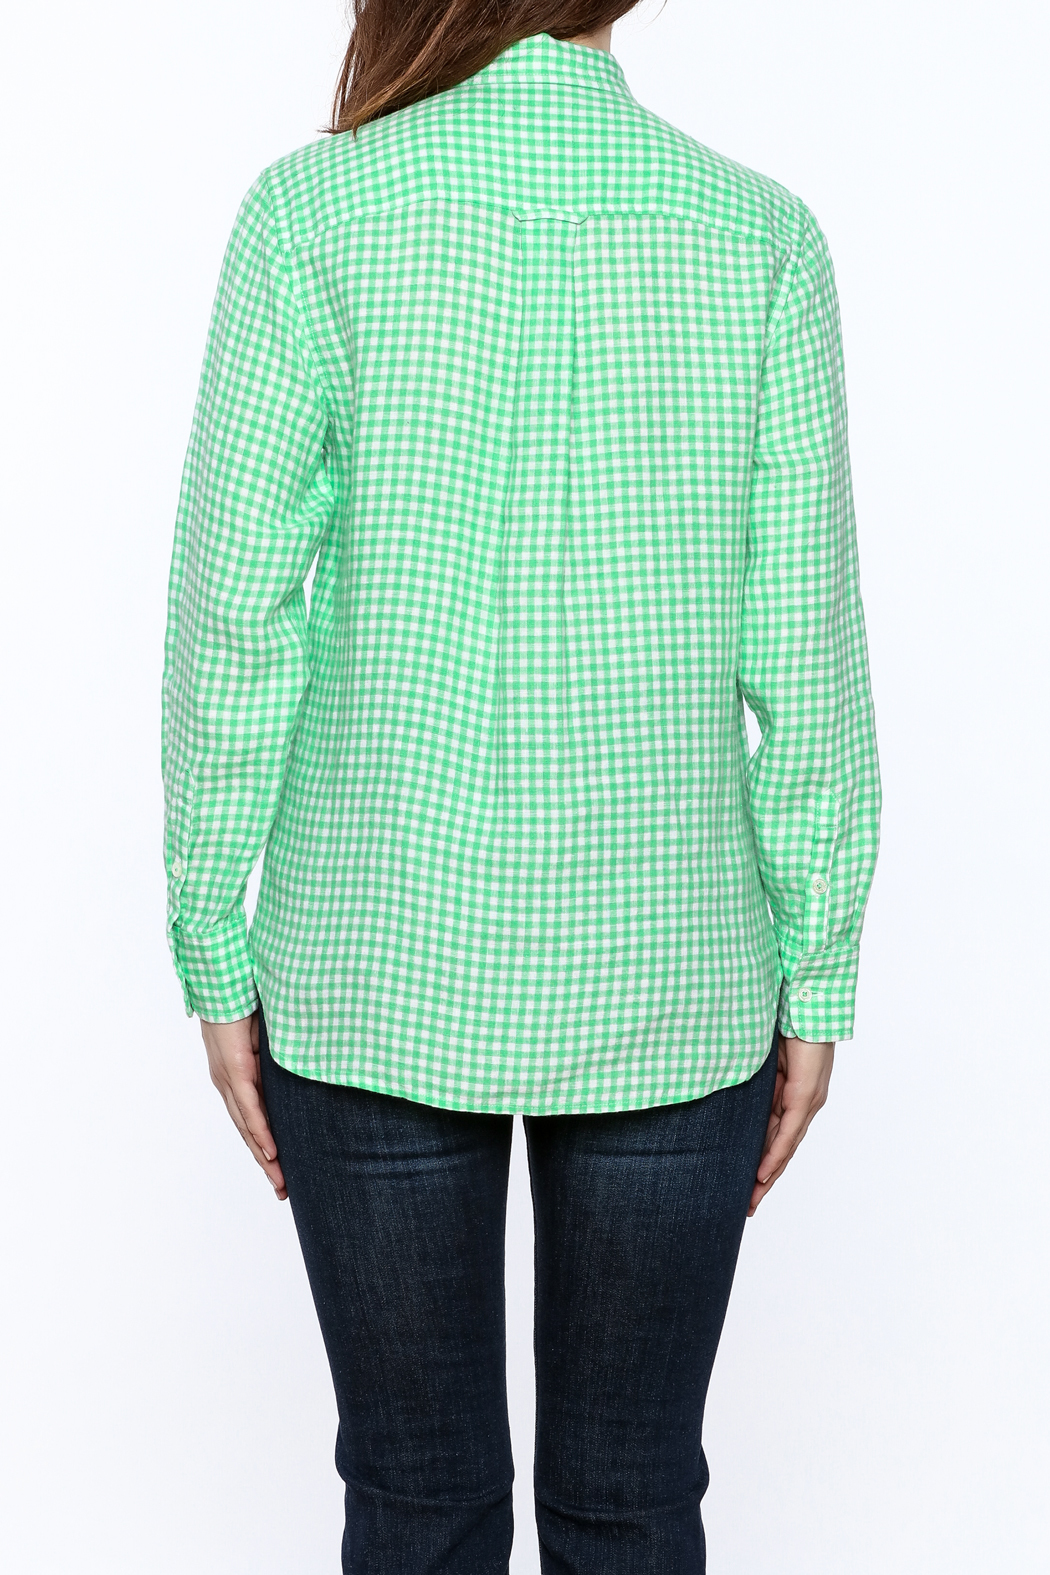 Southern Tide Gingham Button-Down Top - Back Cropped Image